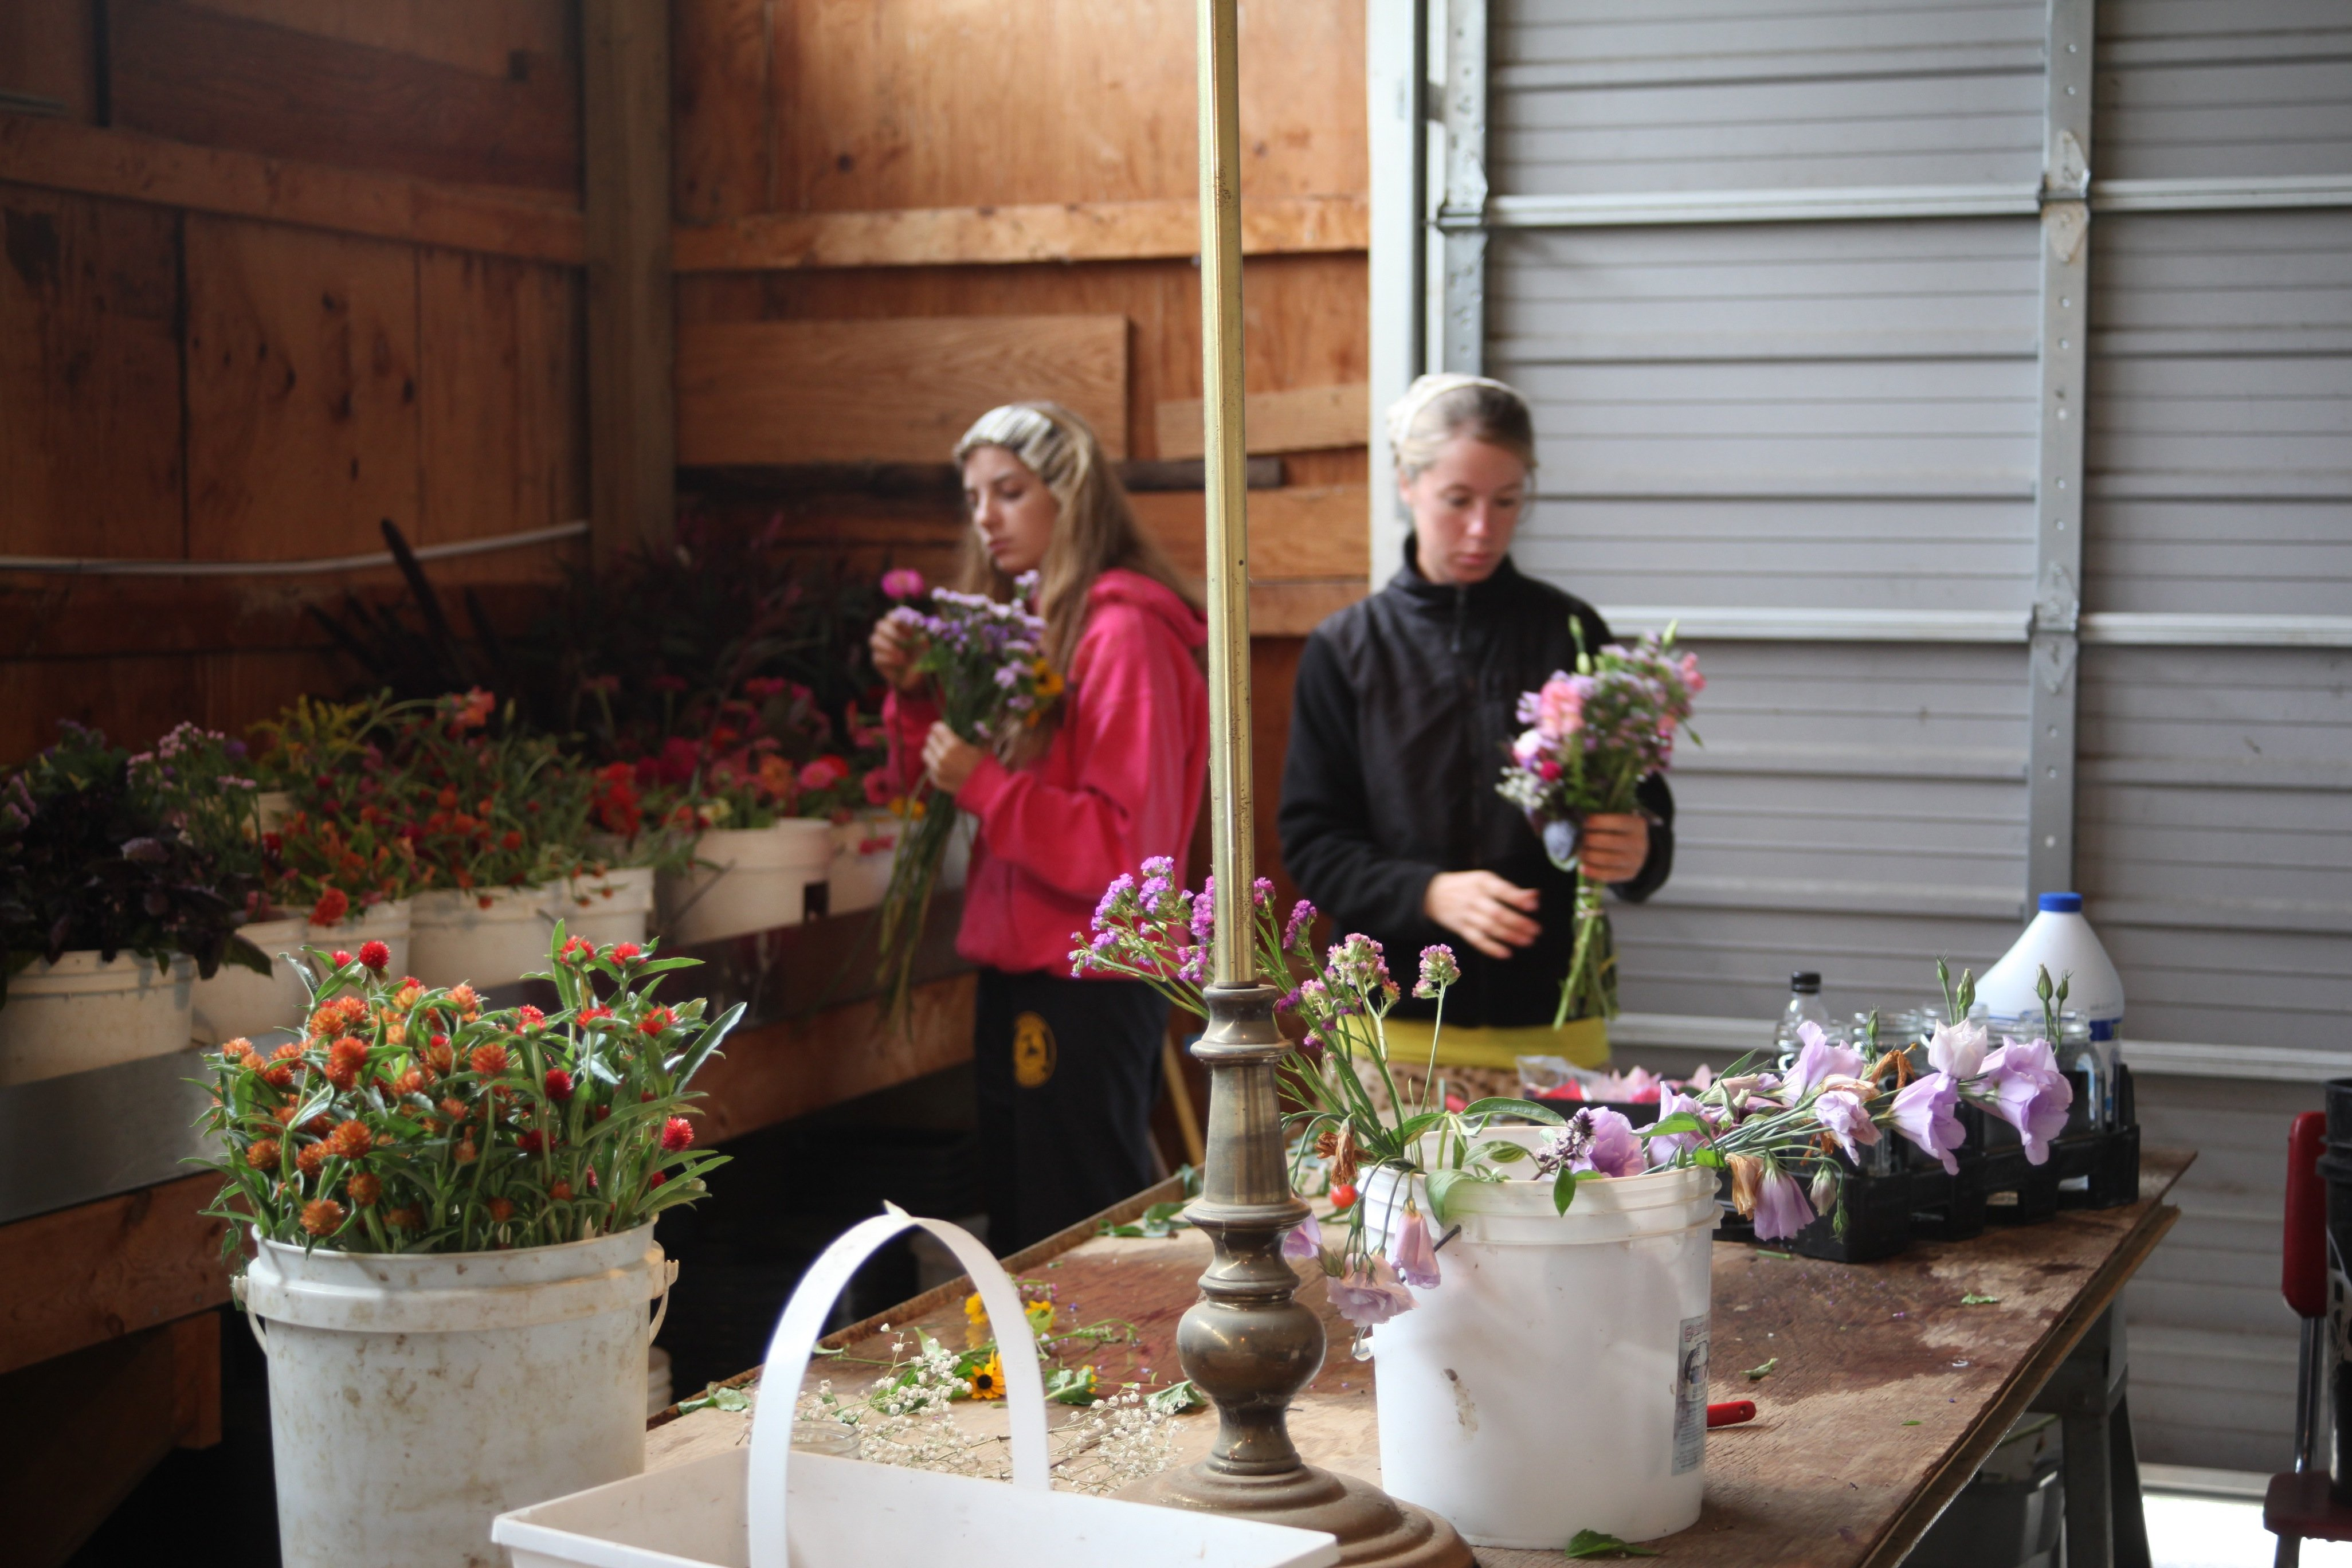 grace and cody making bouquets